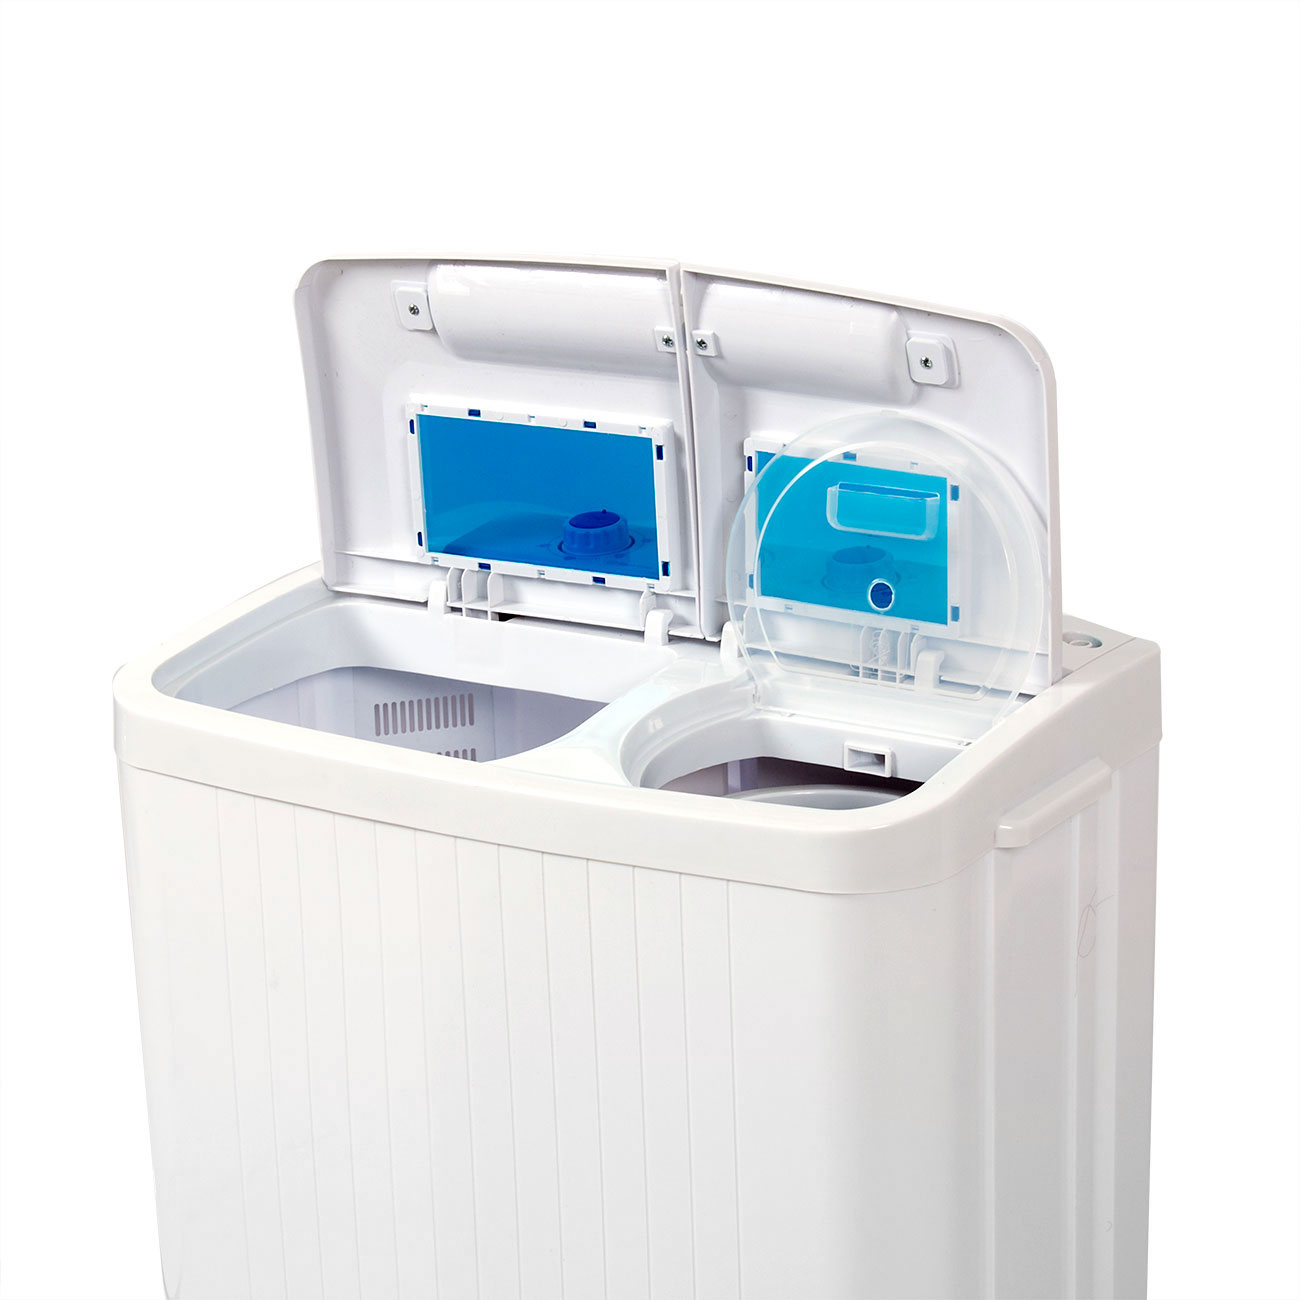 Portable Washing Machine Compact Wash Spin Dry Cycle Laundry with BuiltIn PUMP  eBay